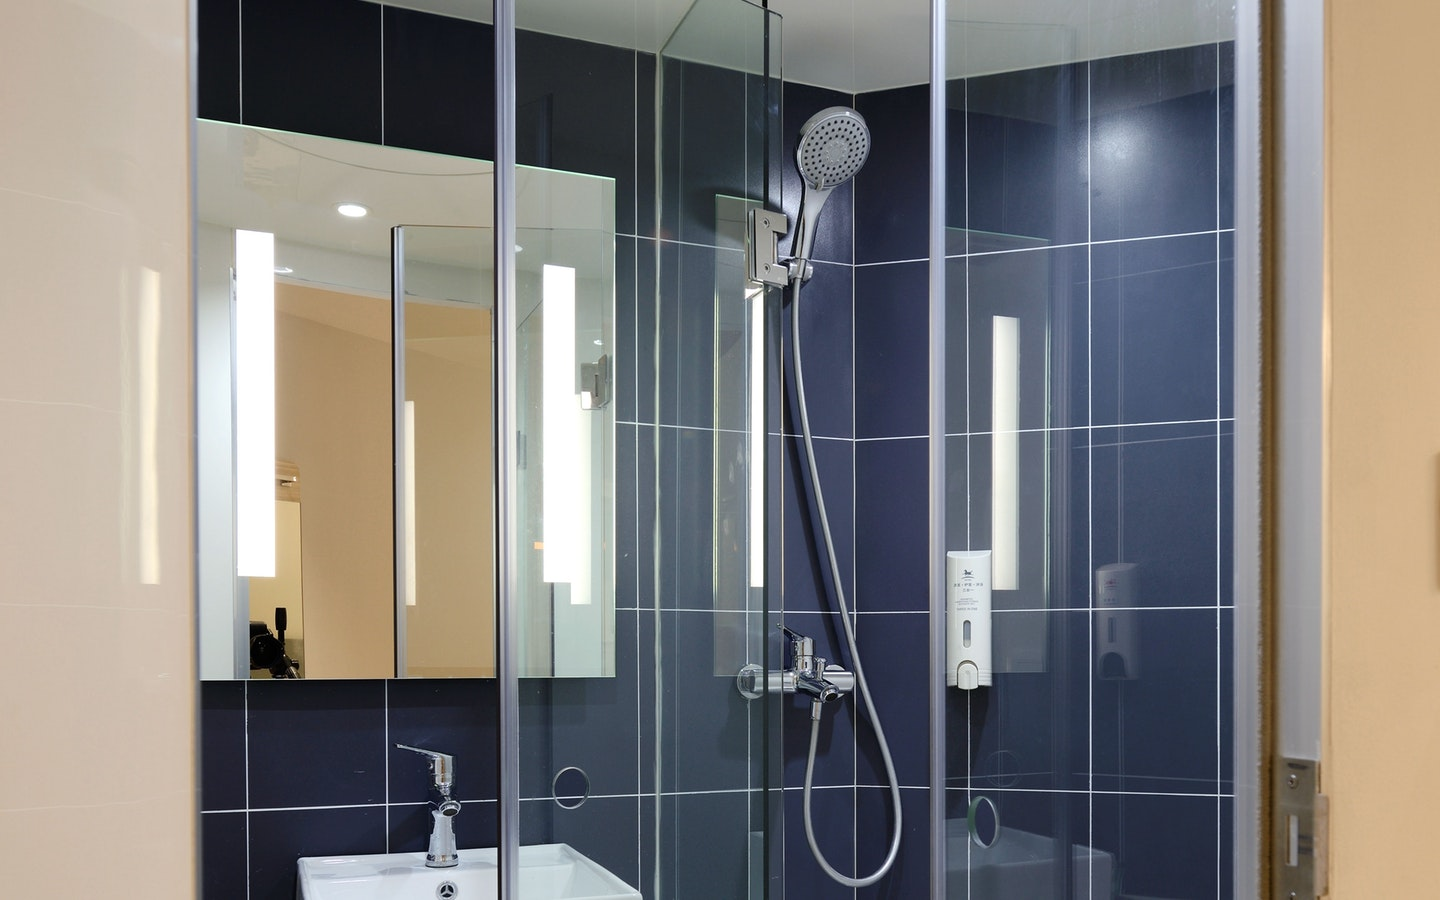 Having a glass panel is one of the best ways to make your bathroom look bigger